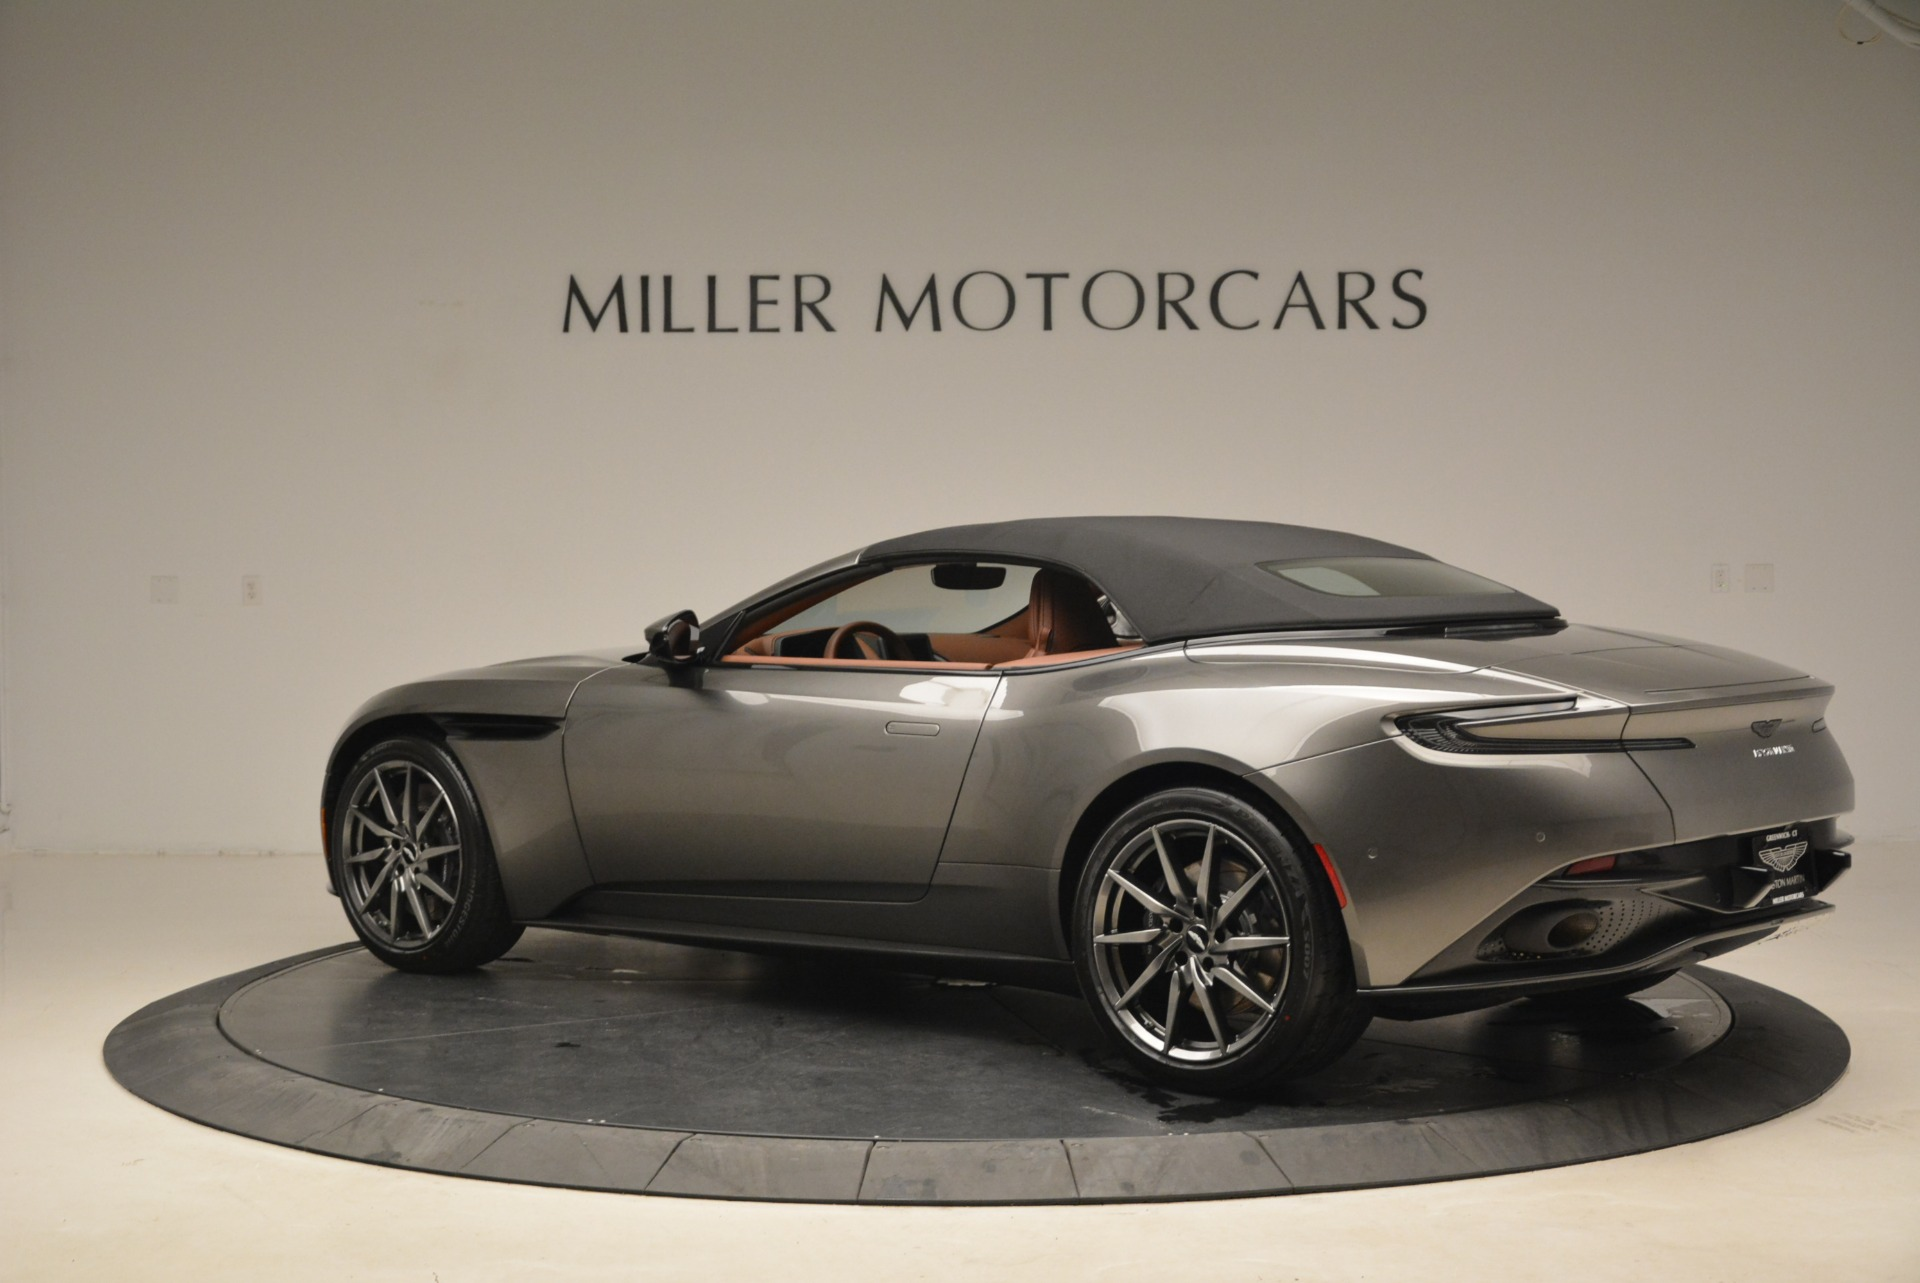 New 2019 Aston Martin DB11 Volante  For Sale In Greenwich, CT. Alfa Romeo of Greenwich, A1284 2209_p16